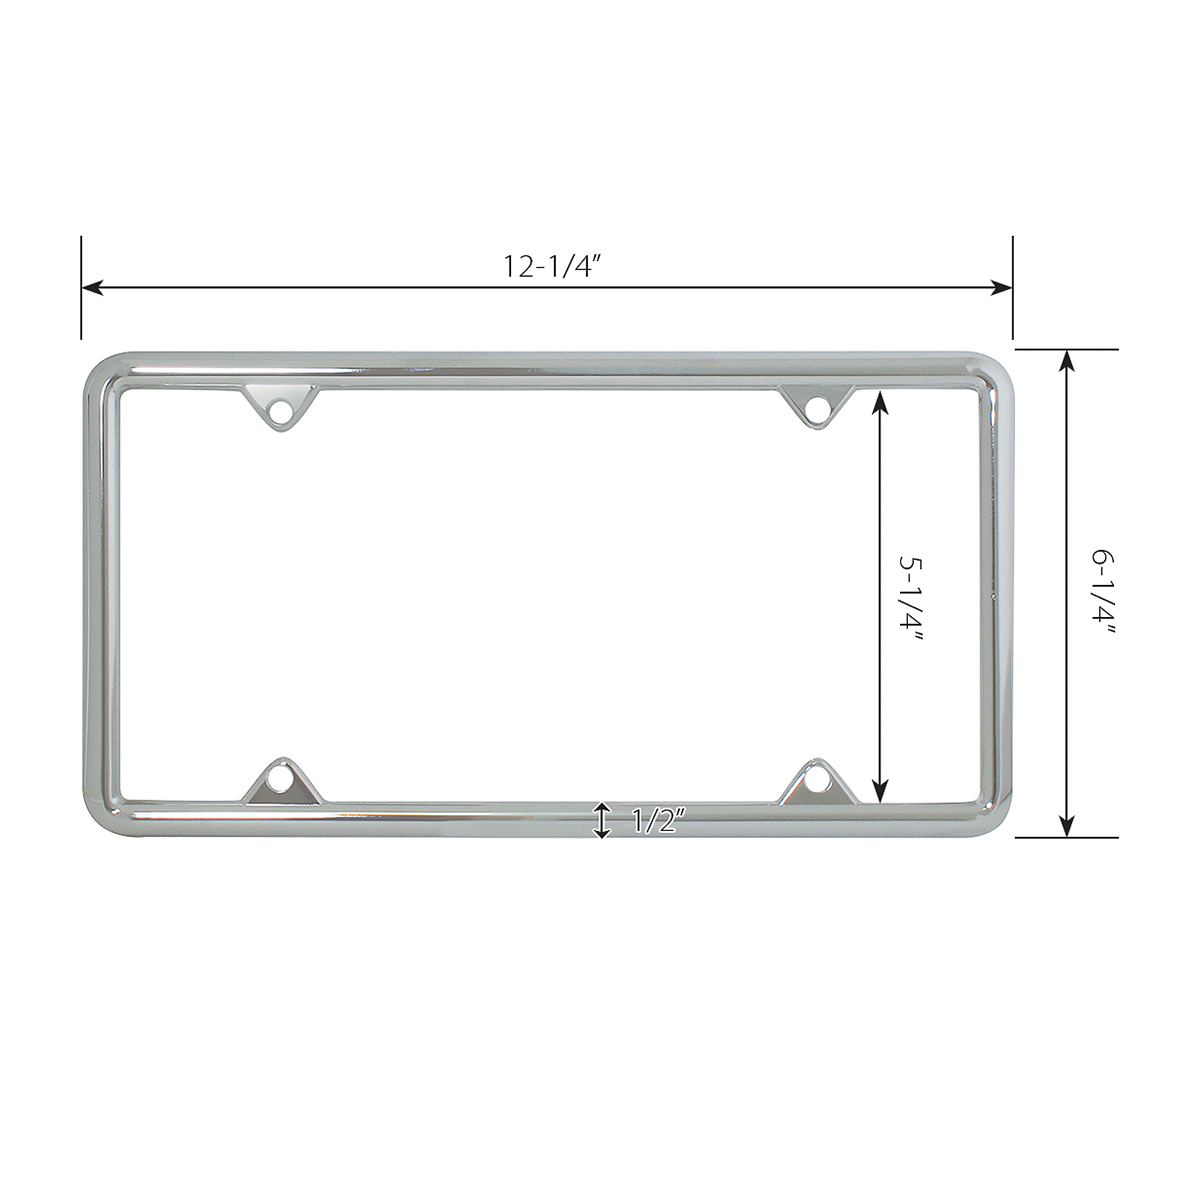 60061 Economic Chrome Zinc Classic 4-Hole License Plate Frames - Measurements